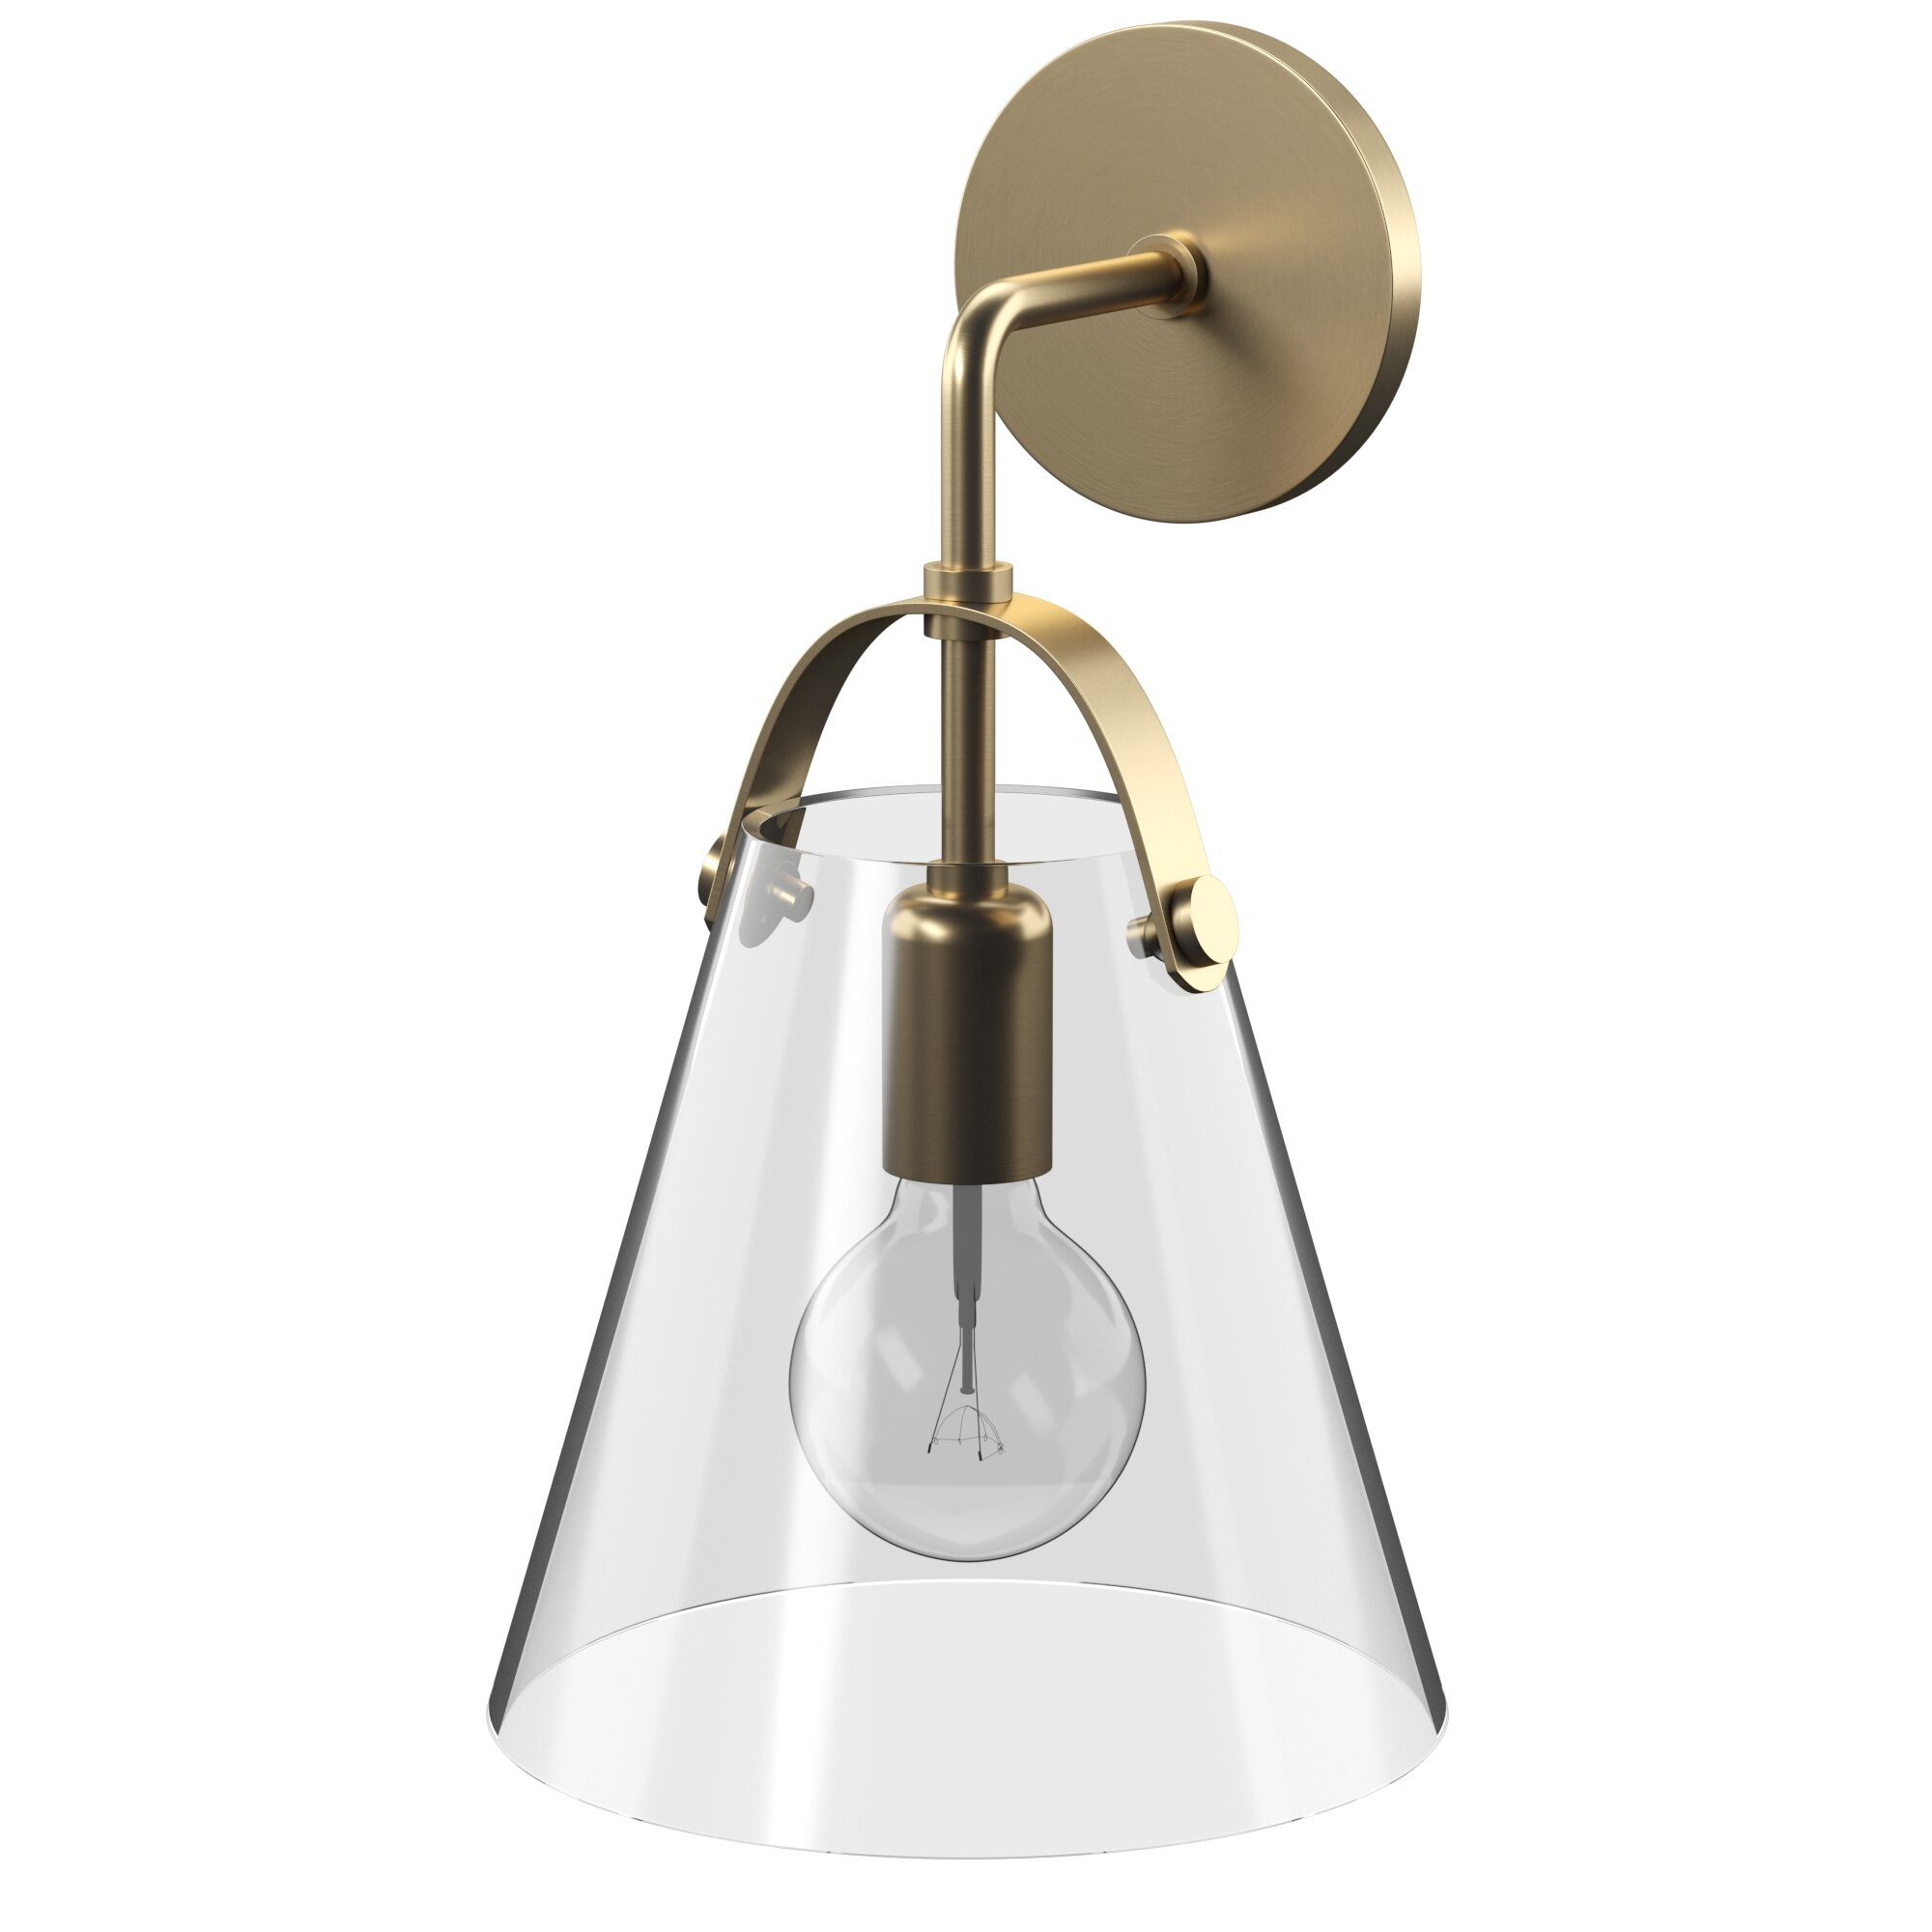 Kautz 1 light armed sconce with dimmer switch